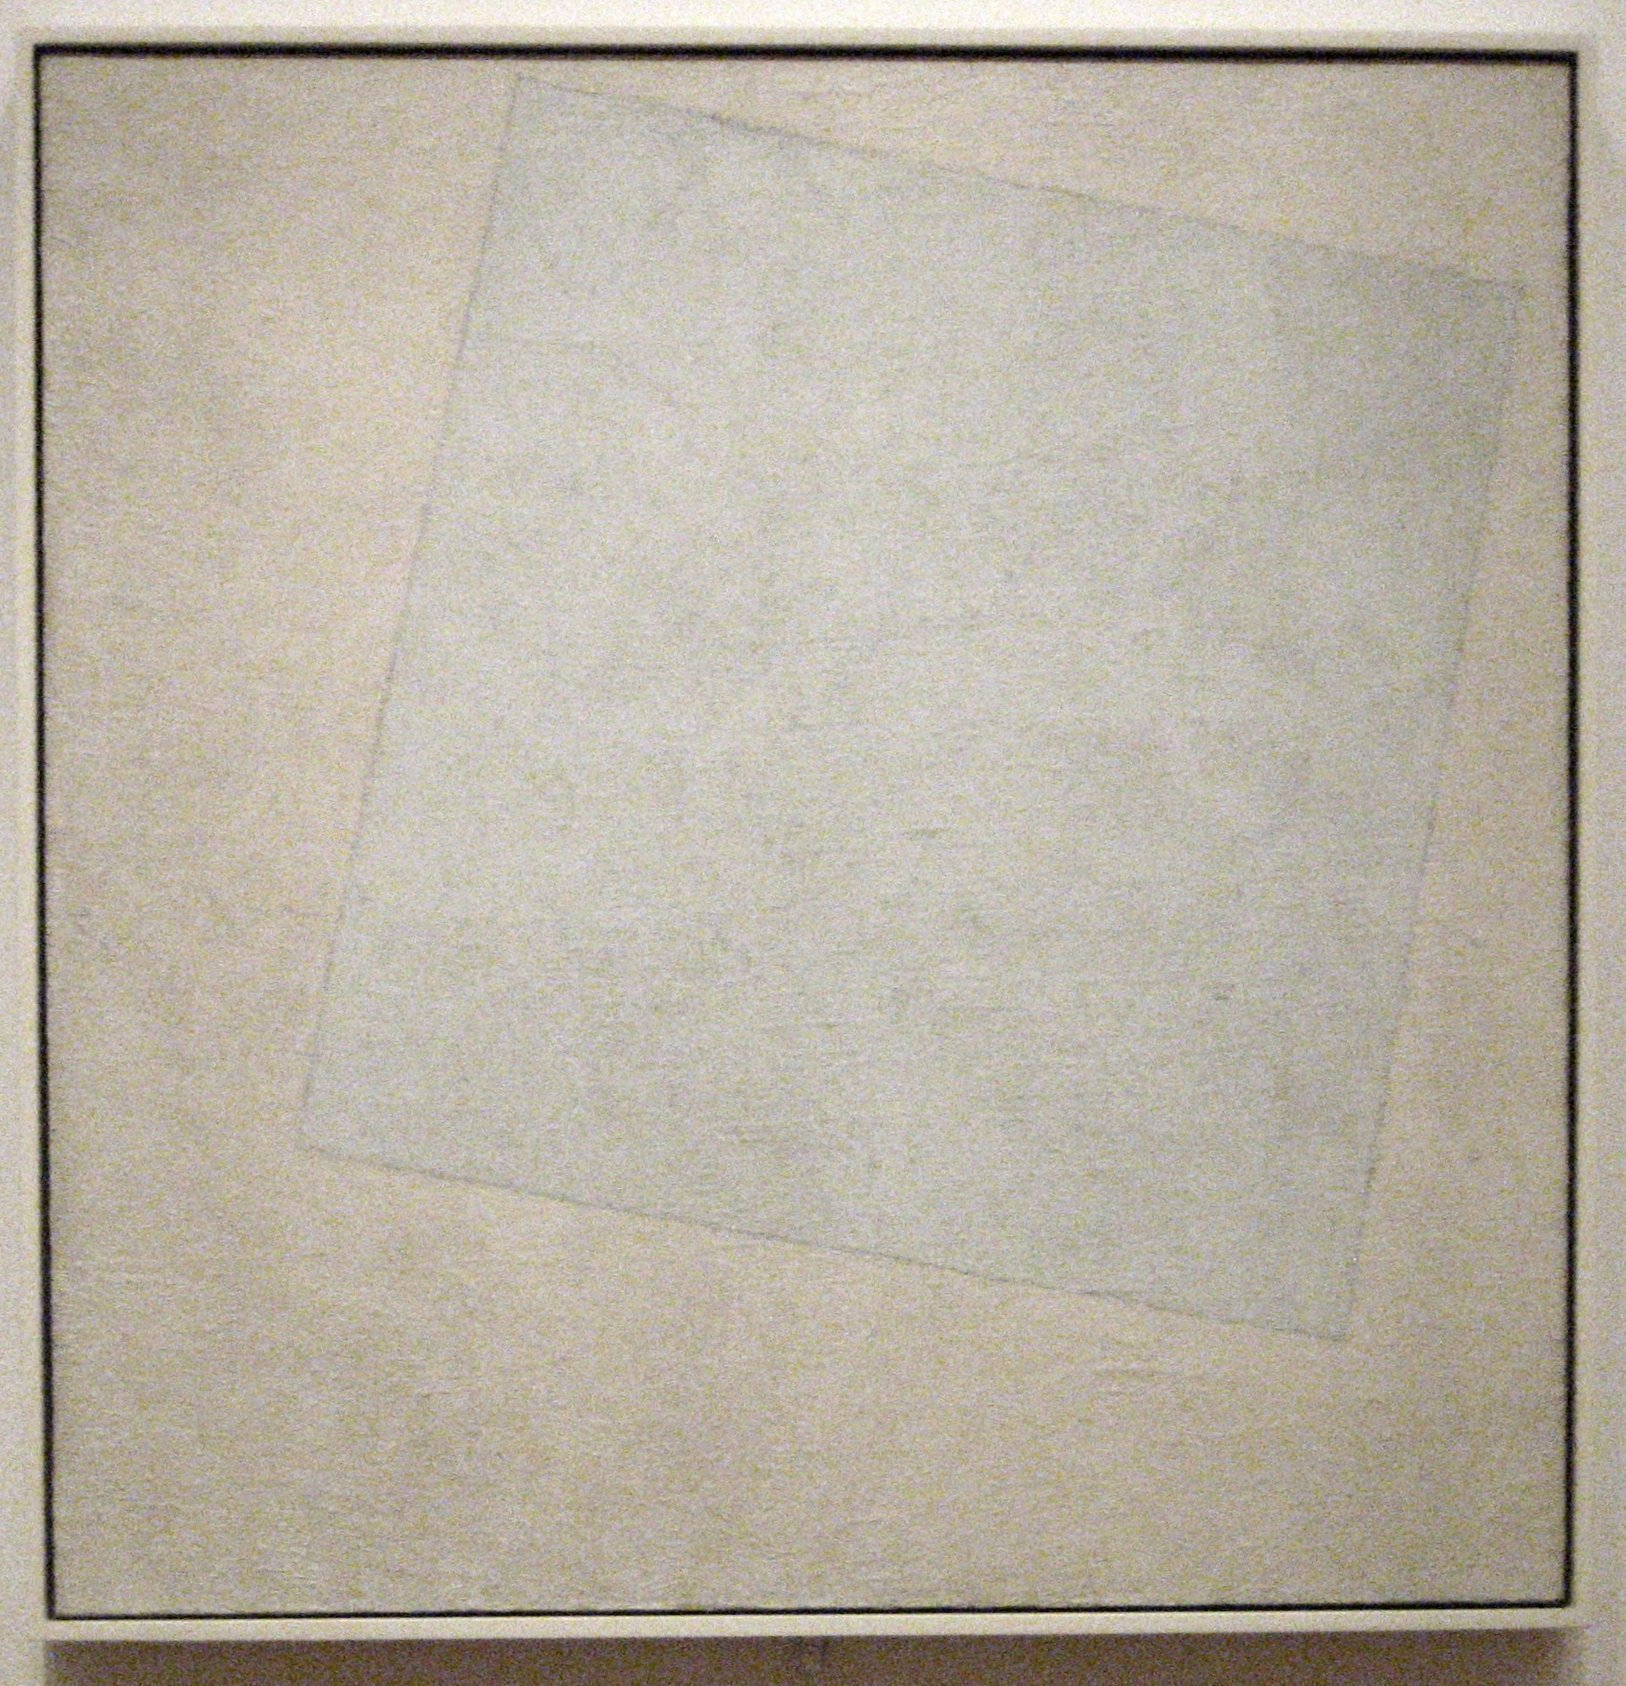 https://upload.wikimedia.org/wikipedia/commons/5/56/Kazimir_Malevich_-_%27Suprematist_Composition-_White_on_White%27%2C_oil_on_canvas%2C_1918%2C_Museum_of_Modern_Art.jpg